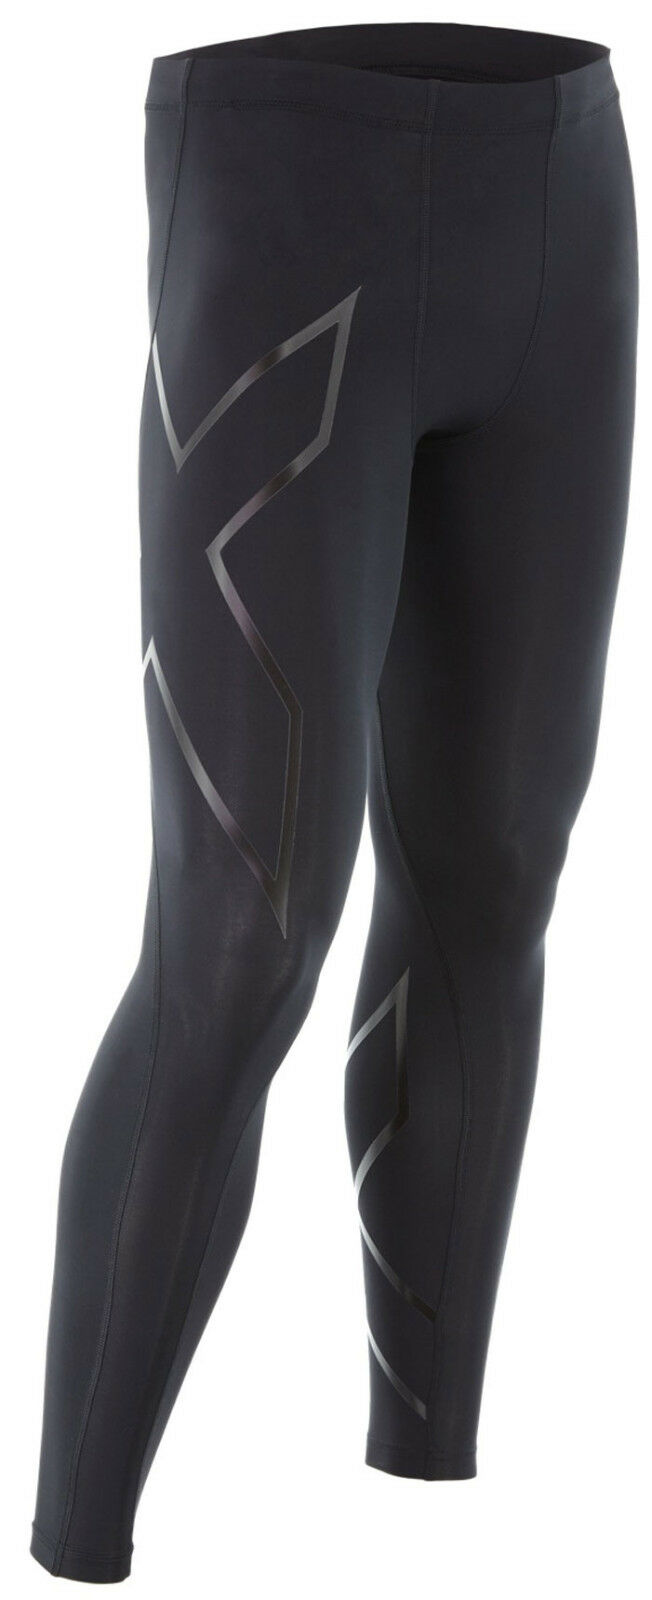 2xu perform tr2 Compression lungo Tight Uomo NeroNero ma3849b